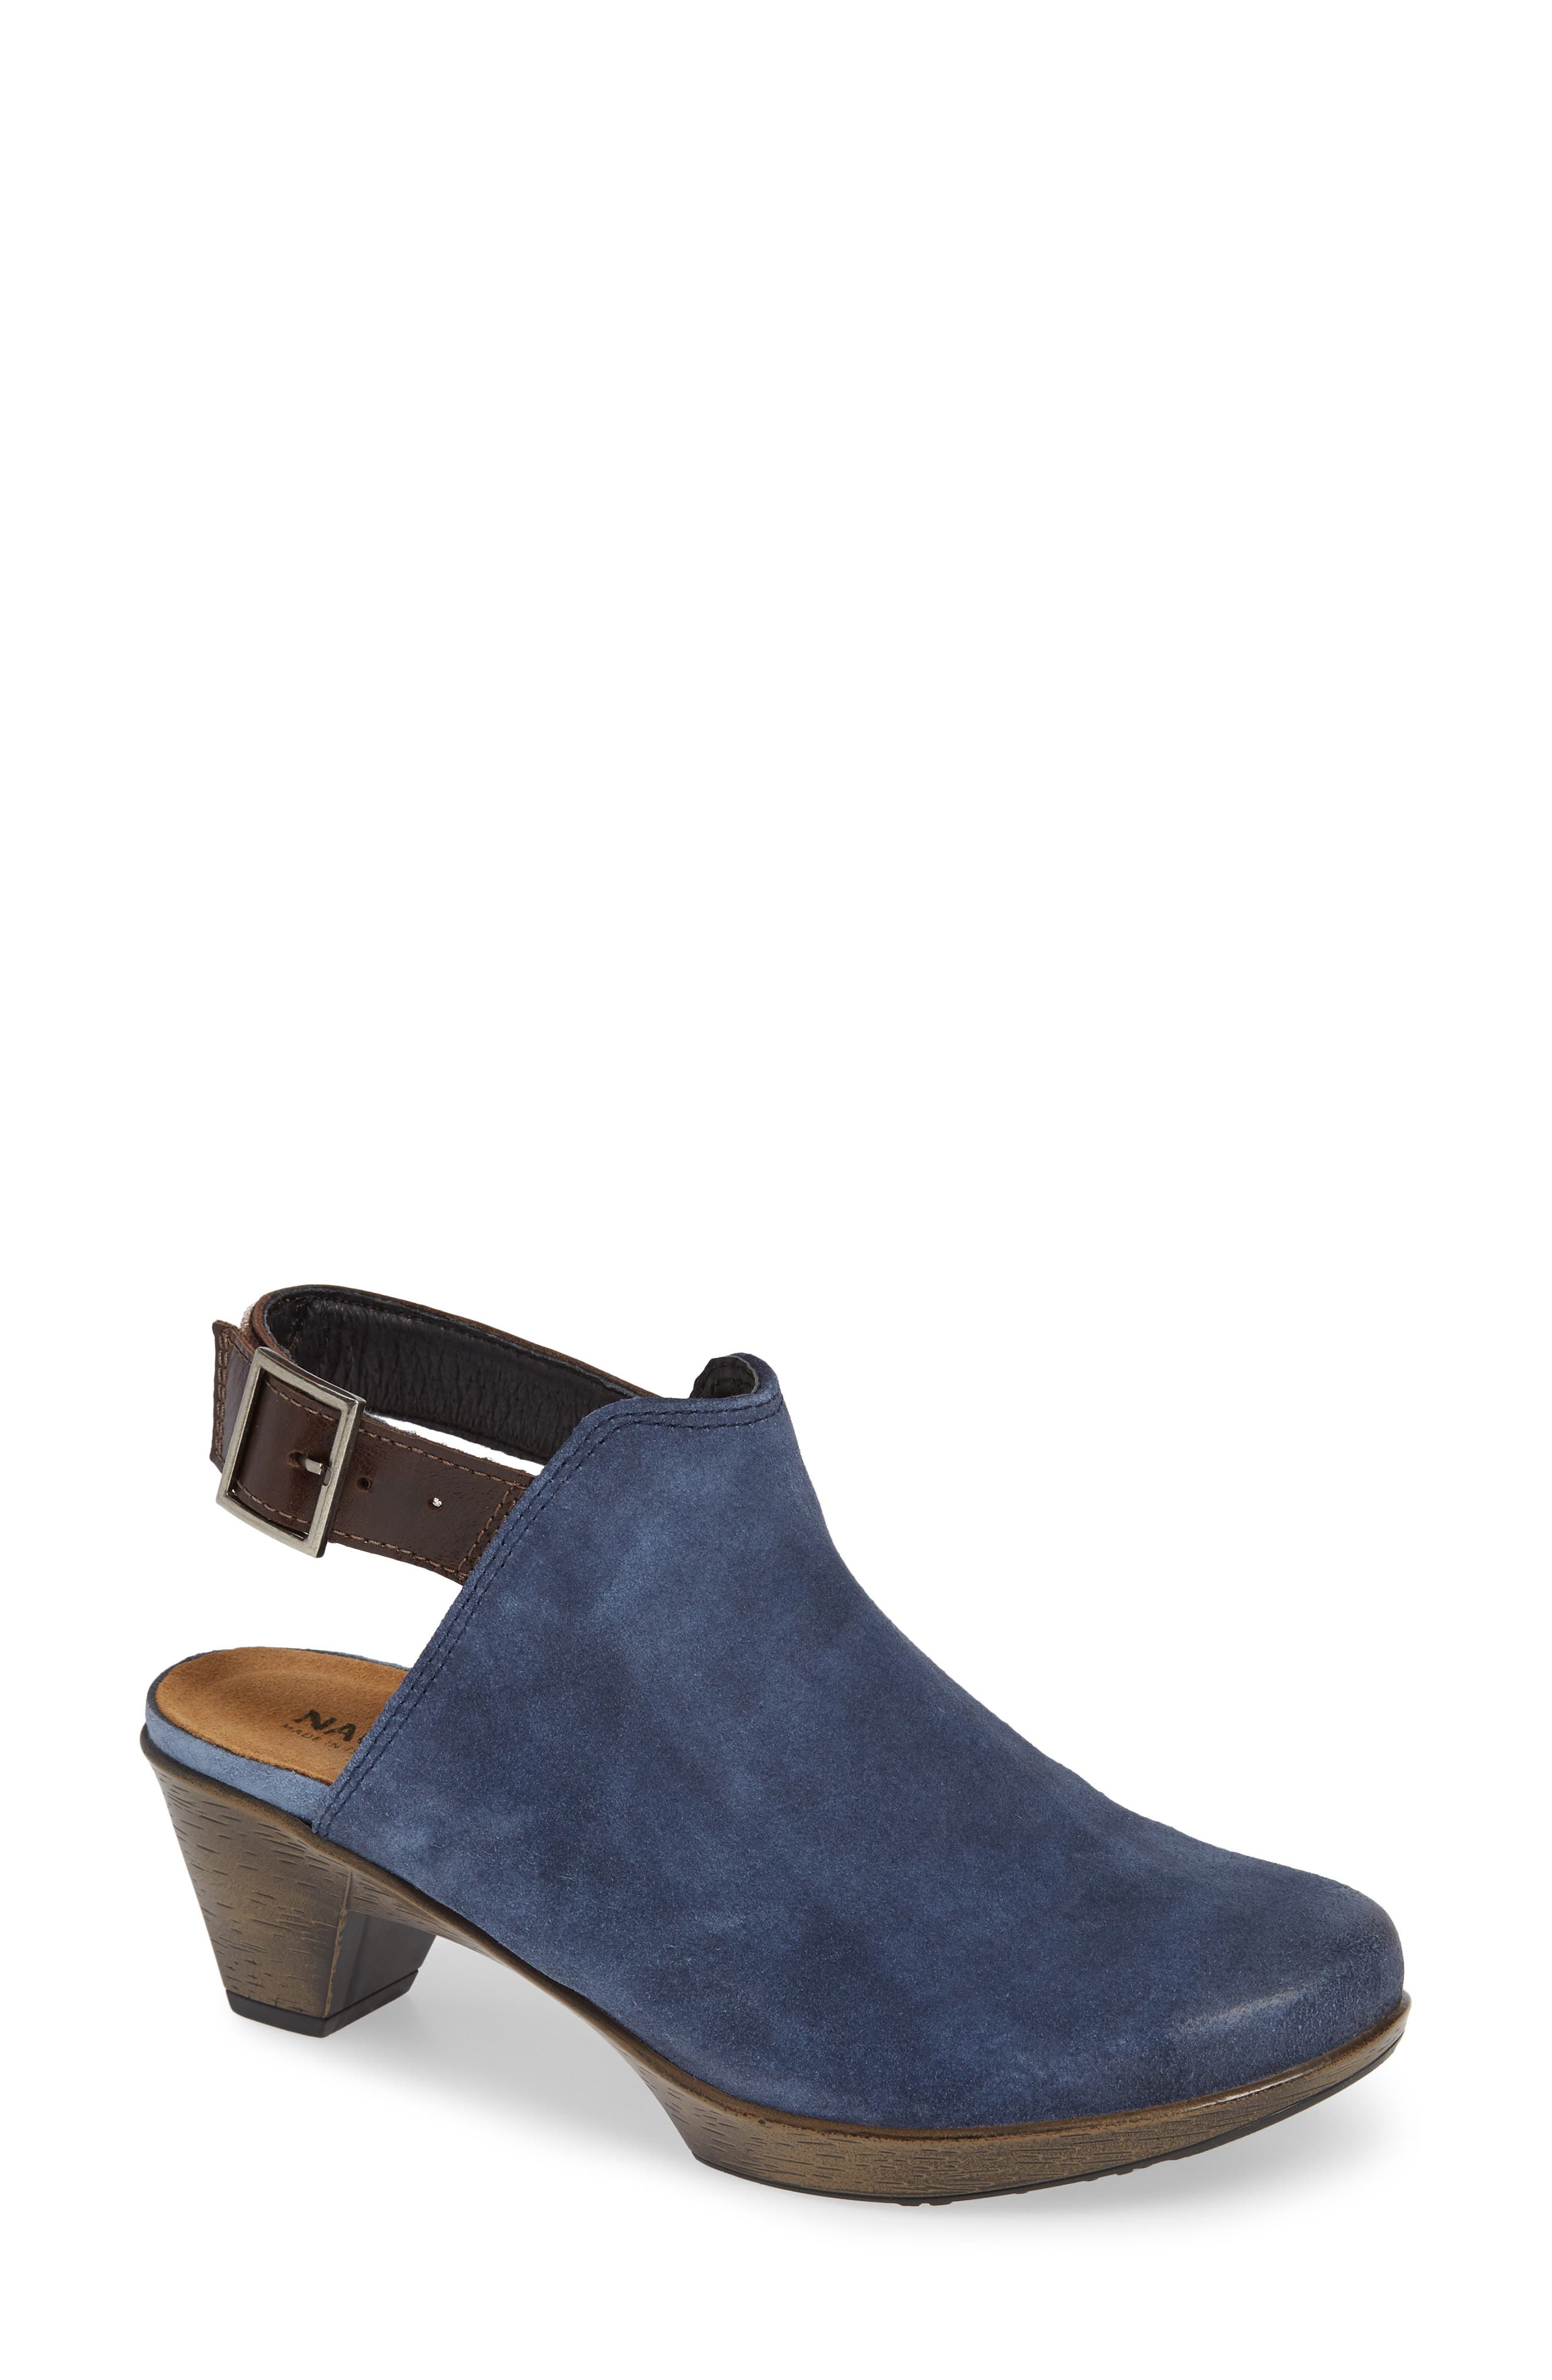 Upgrade Bootie,                             Main thumbnail 1, color,                             BLUE/ WALNUT SUEDE/ LEATHER